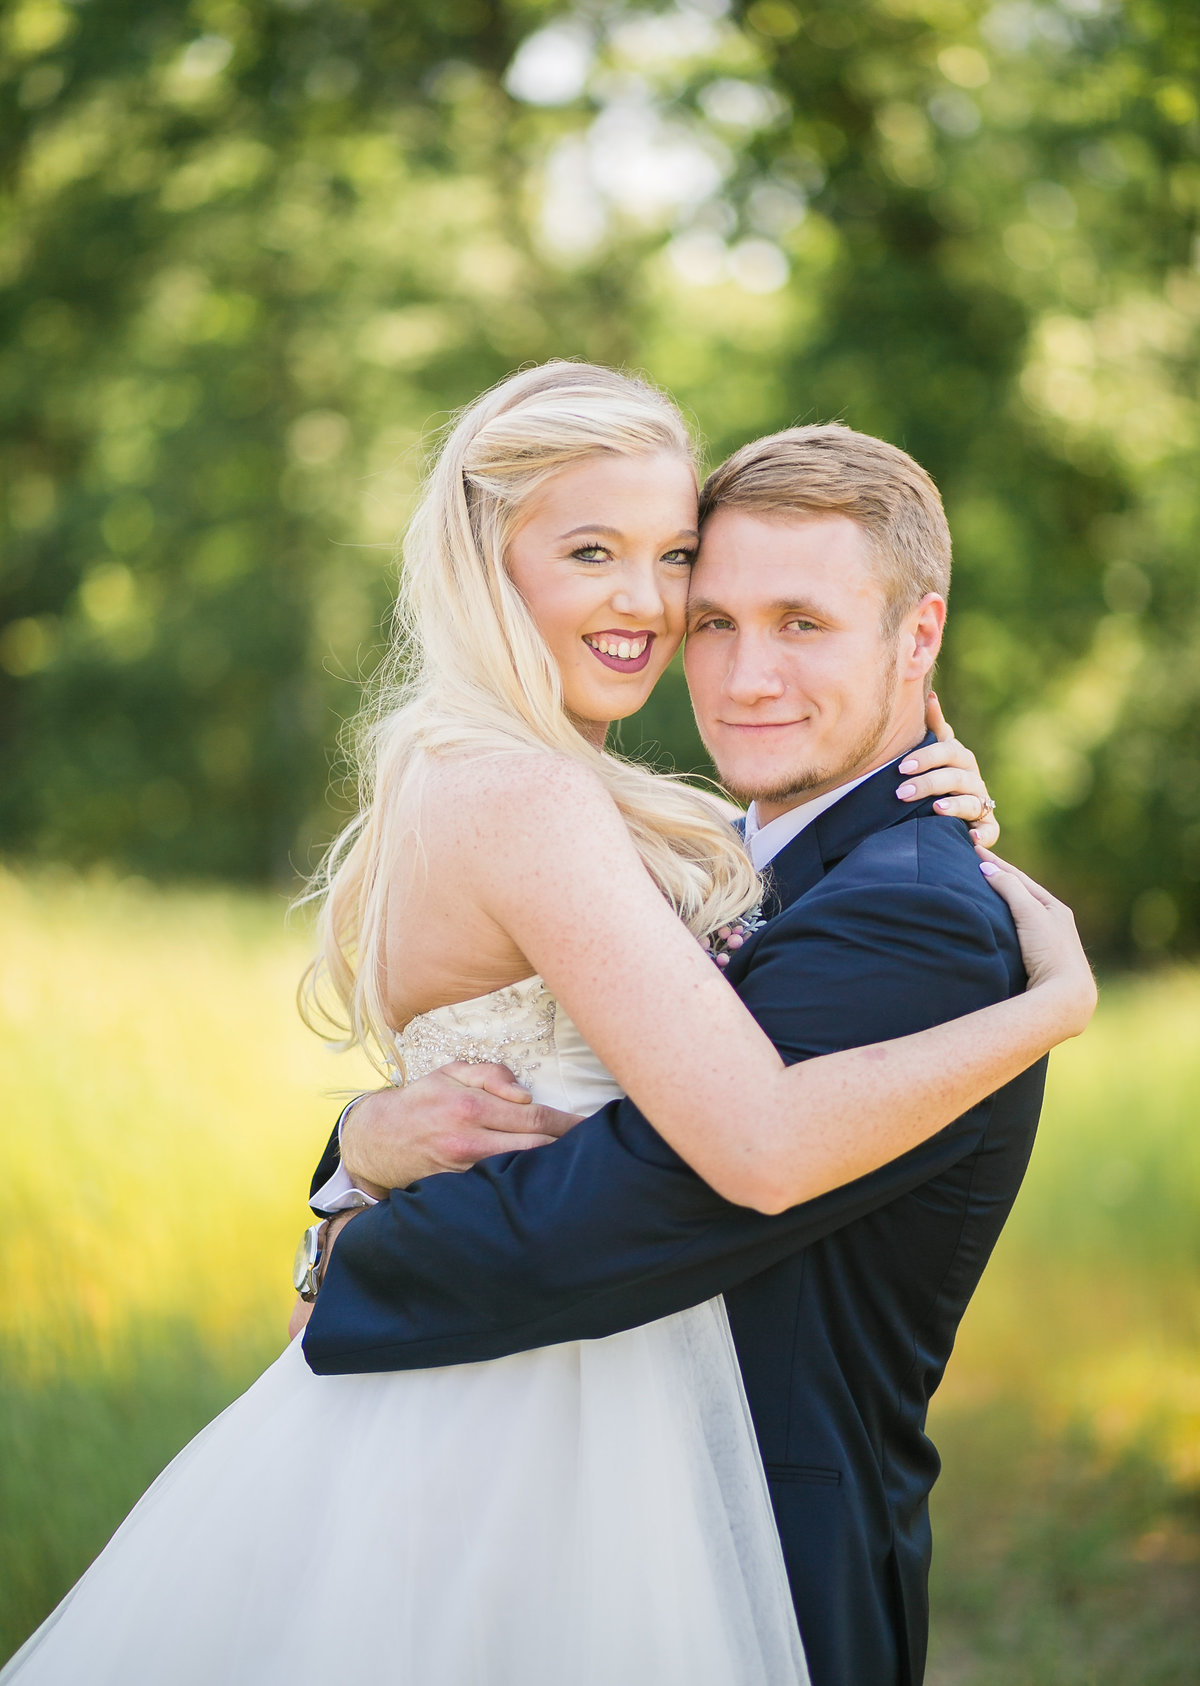 Jordan+Casey-FirstLook-83